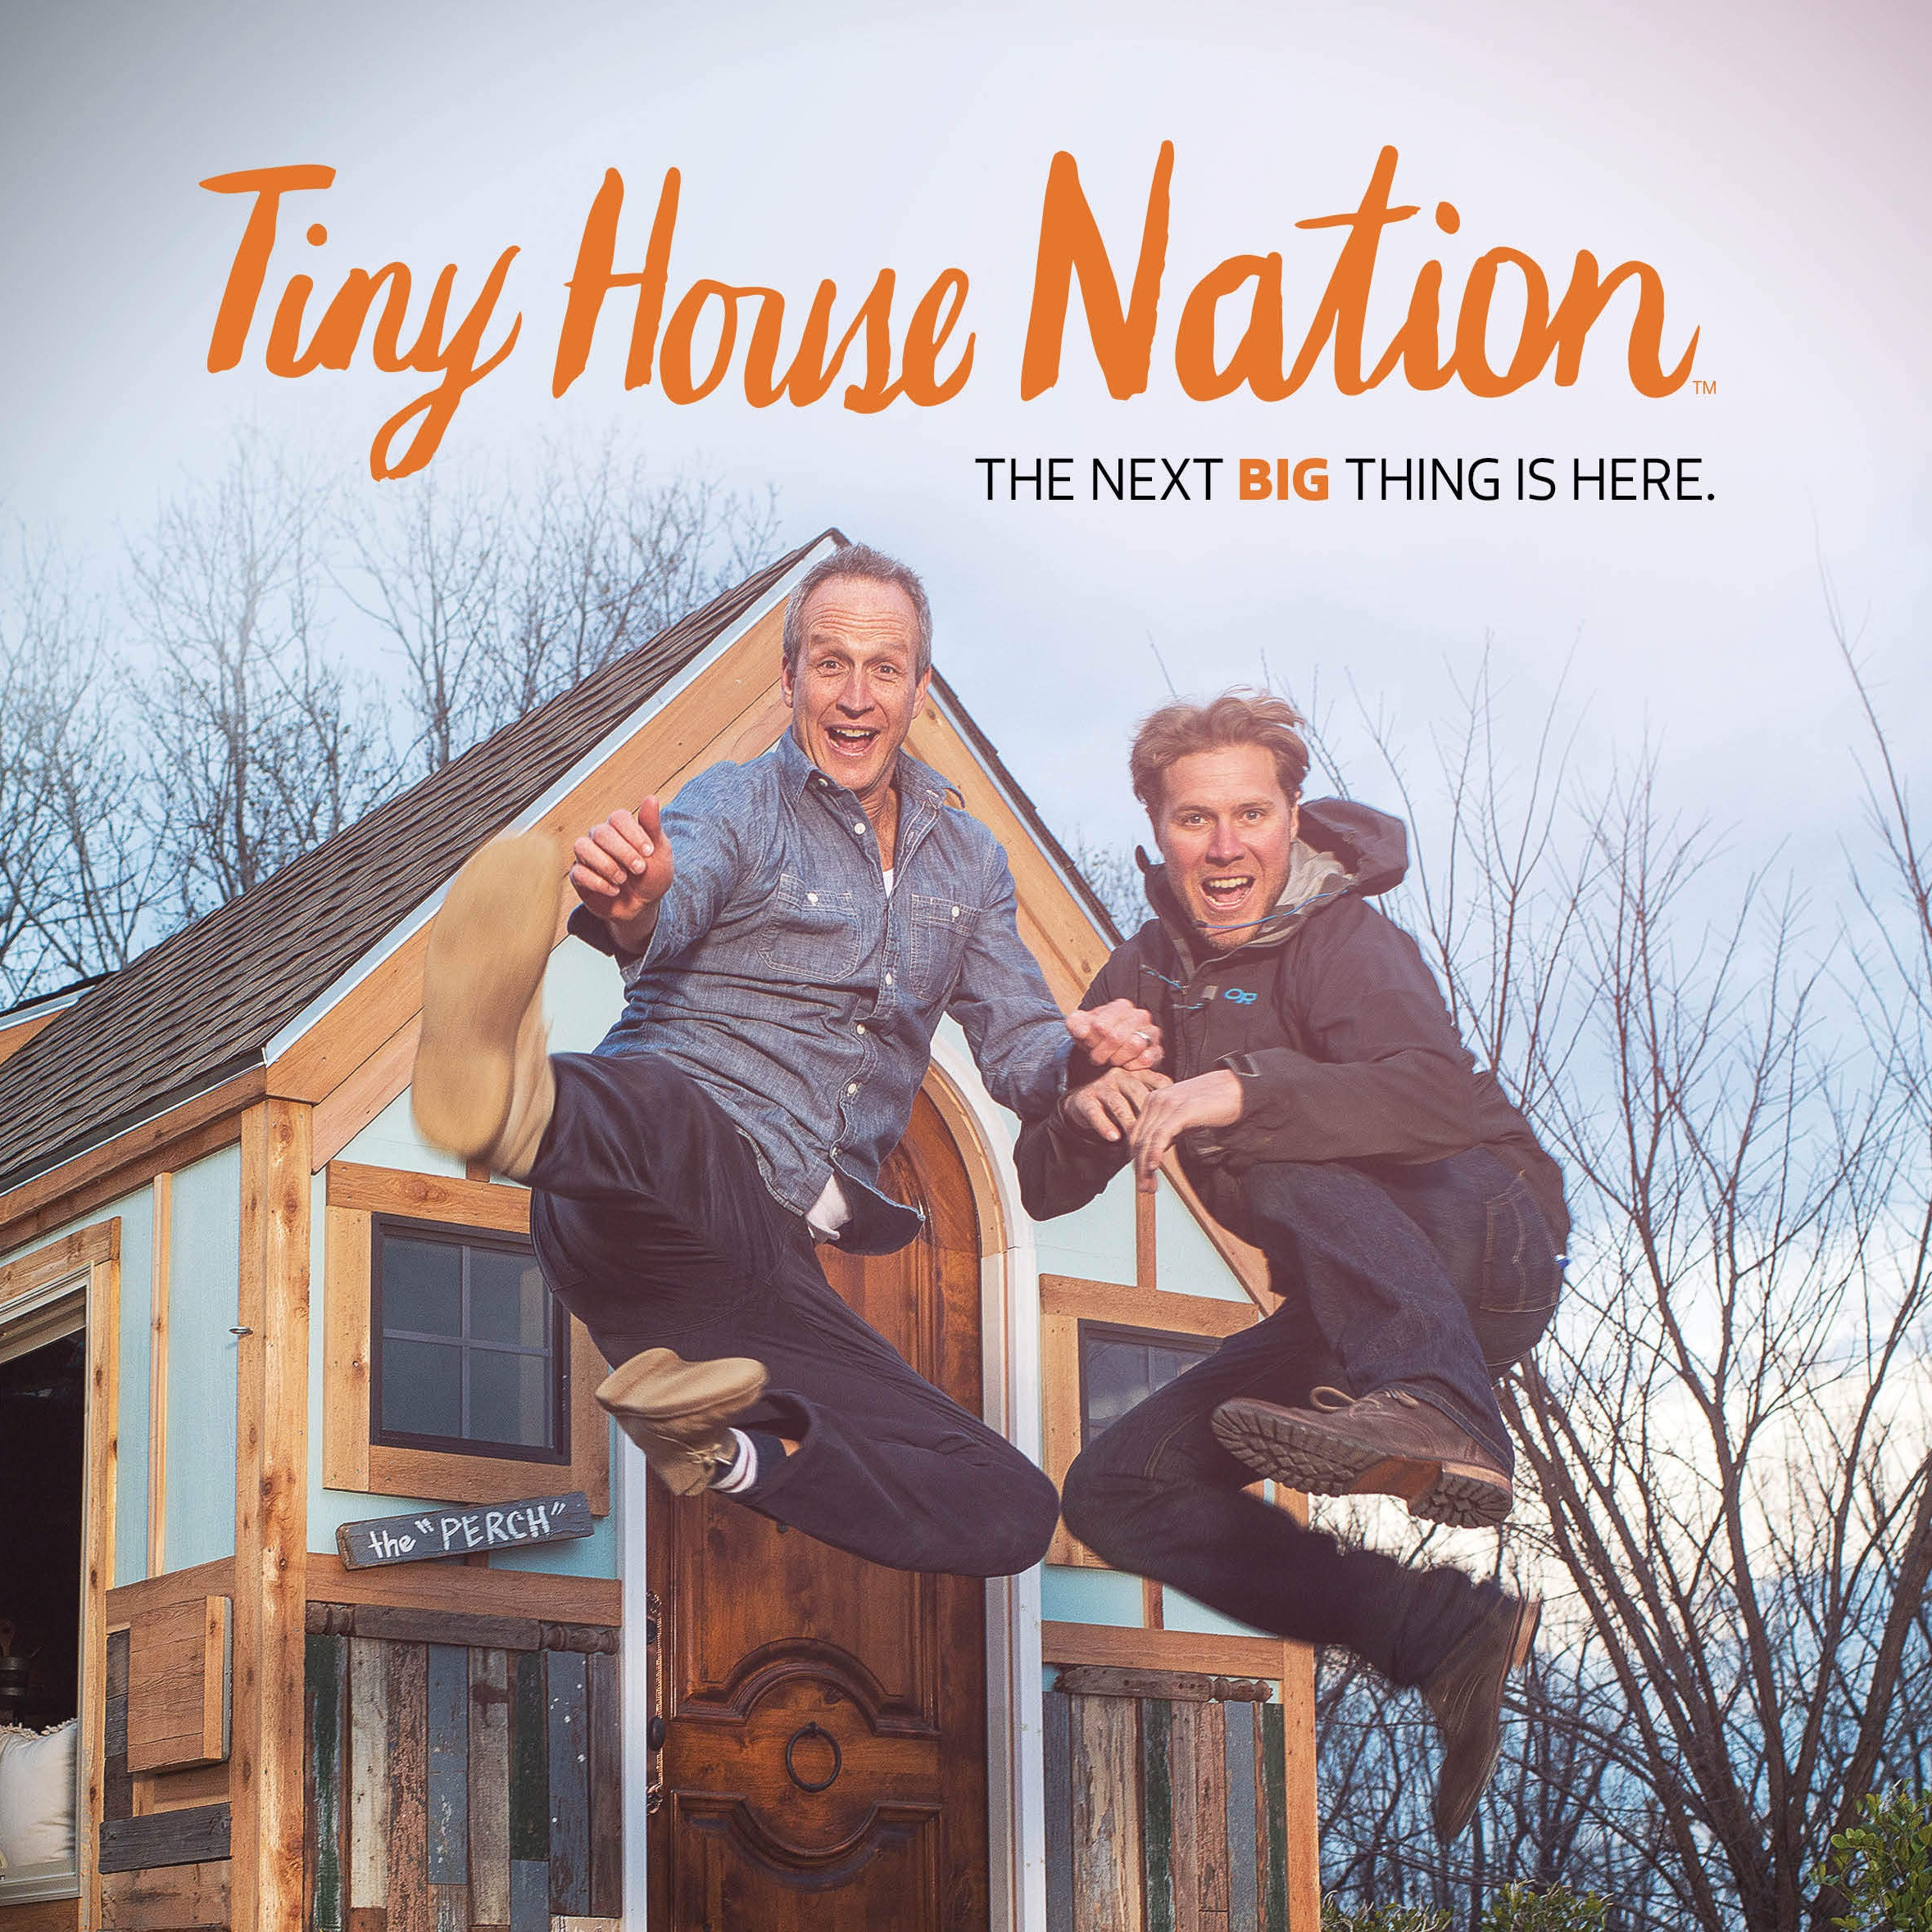 tiny house nation.jpg